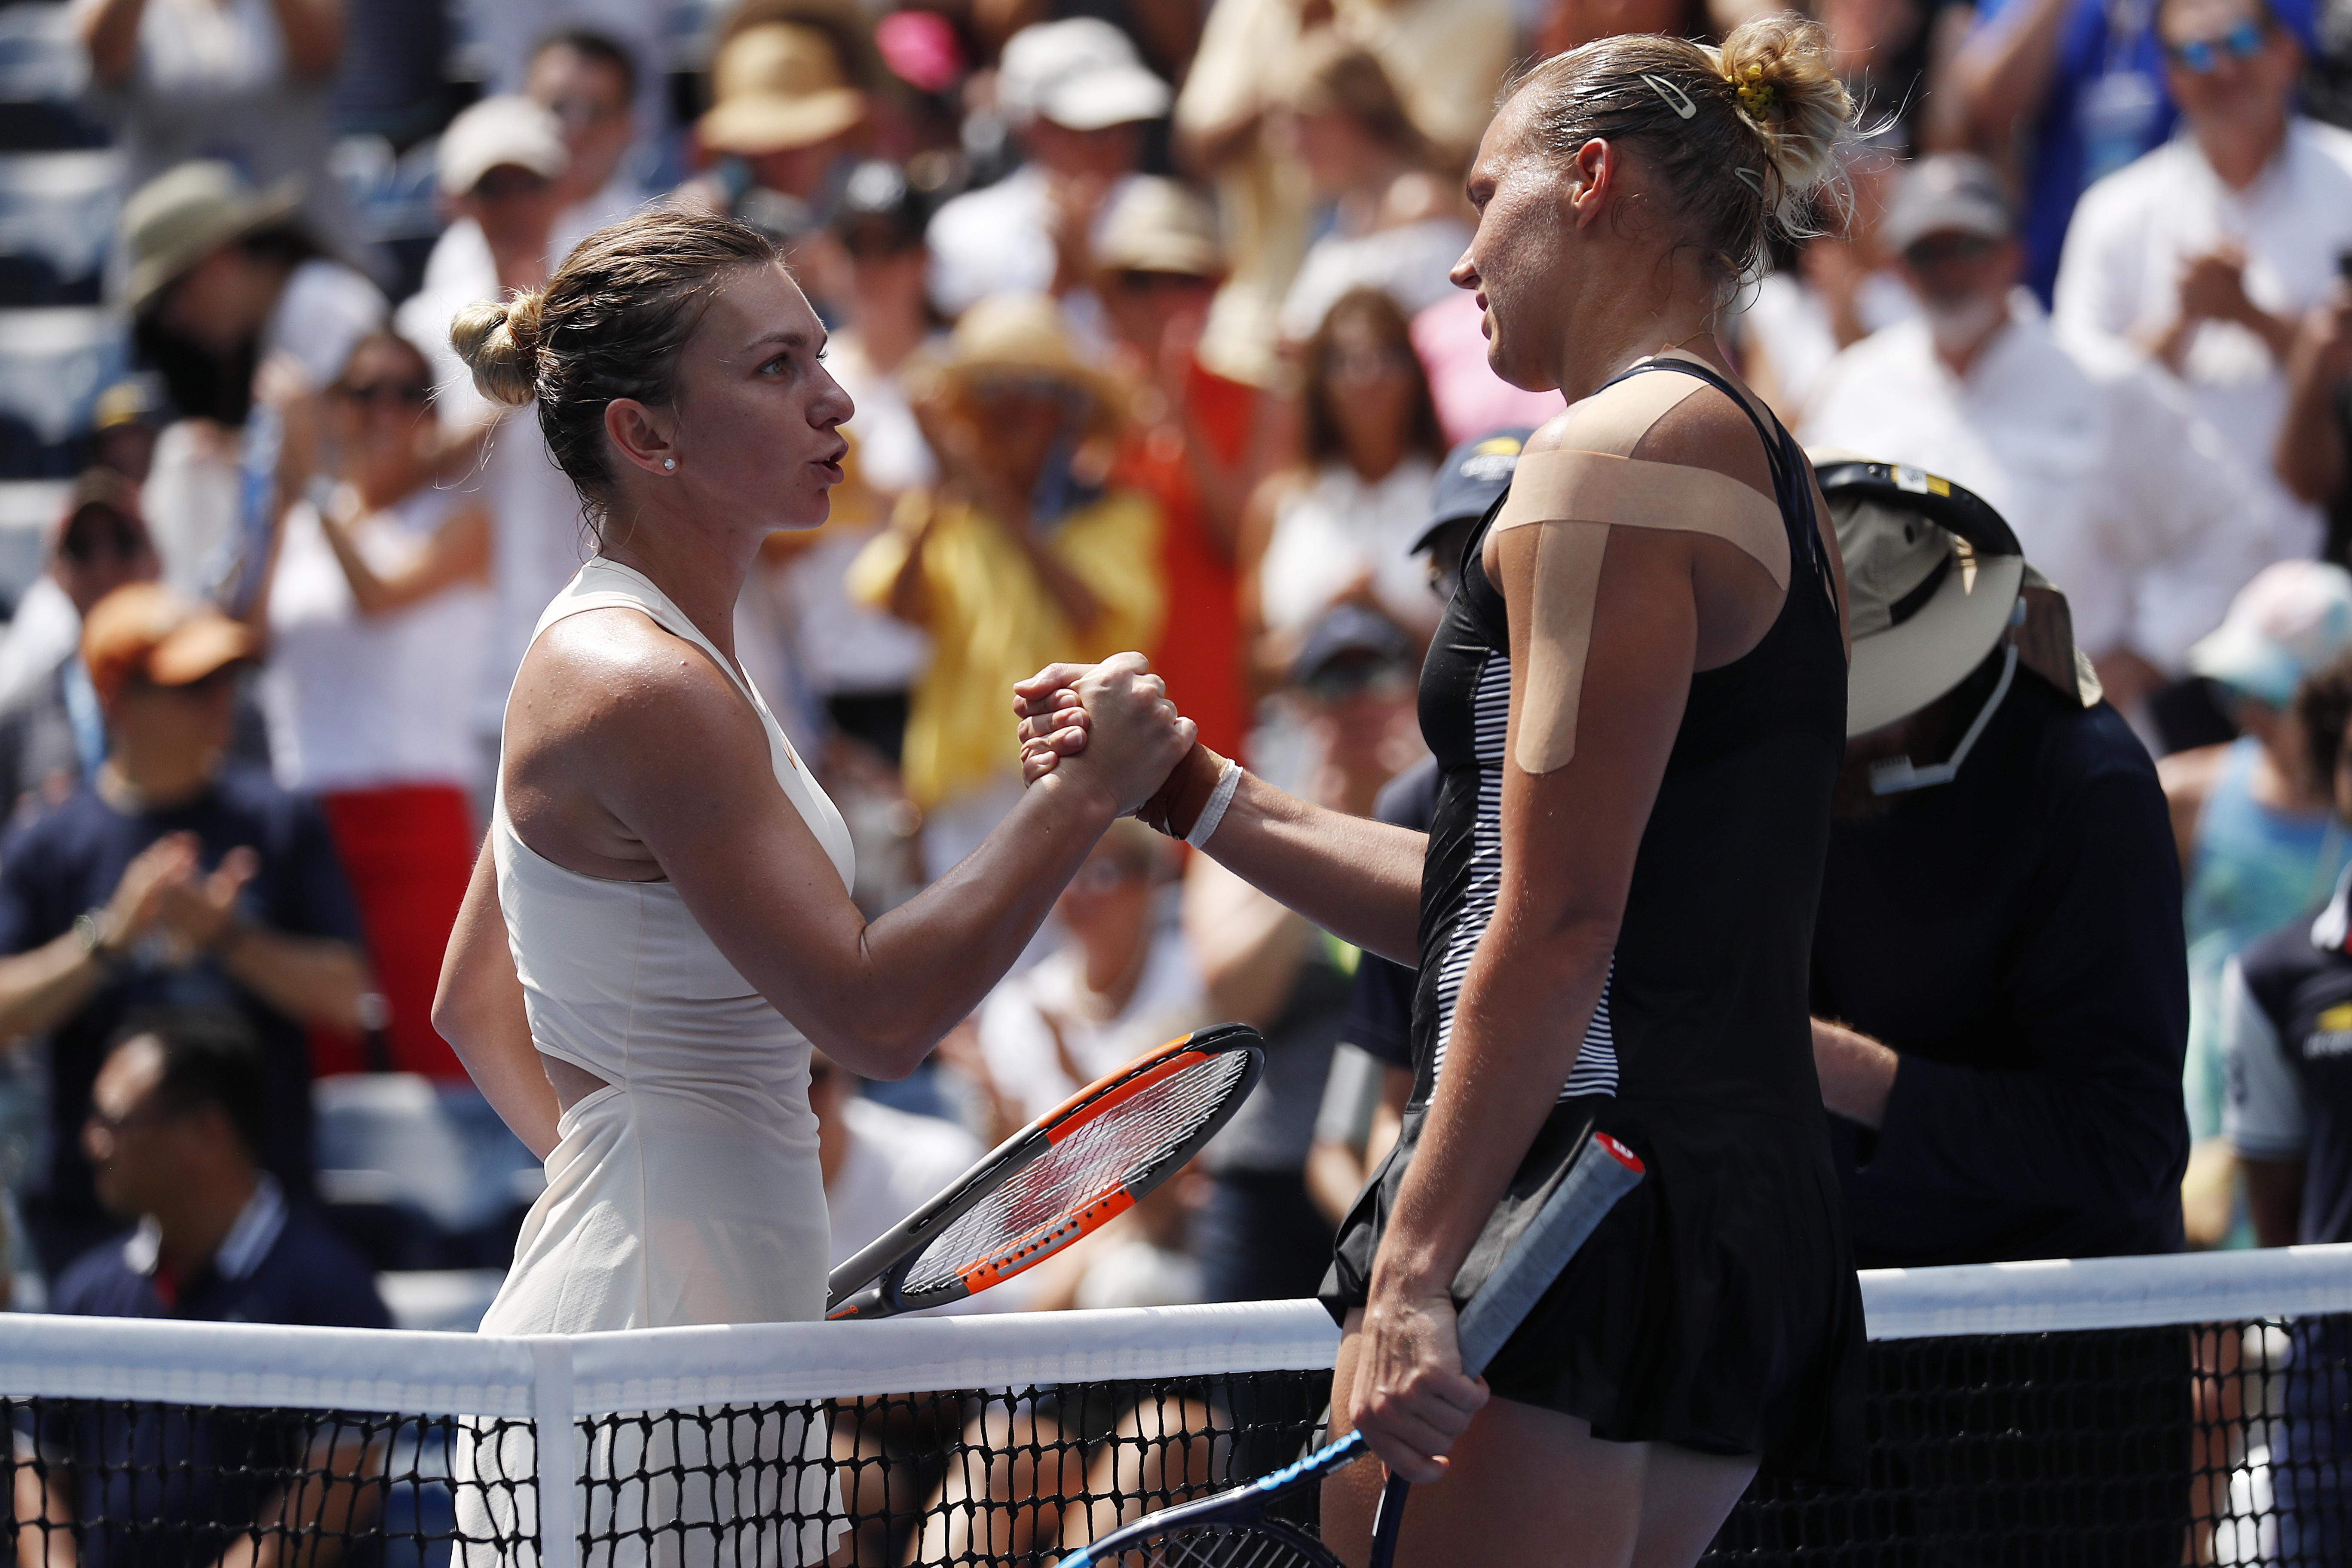 Halep, 26, embraces Kanepi following their match at the US Open